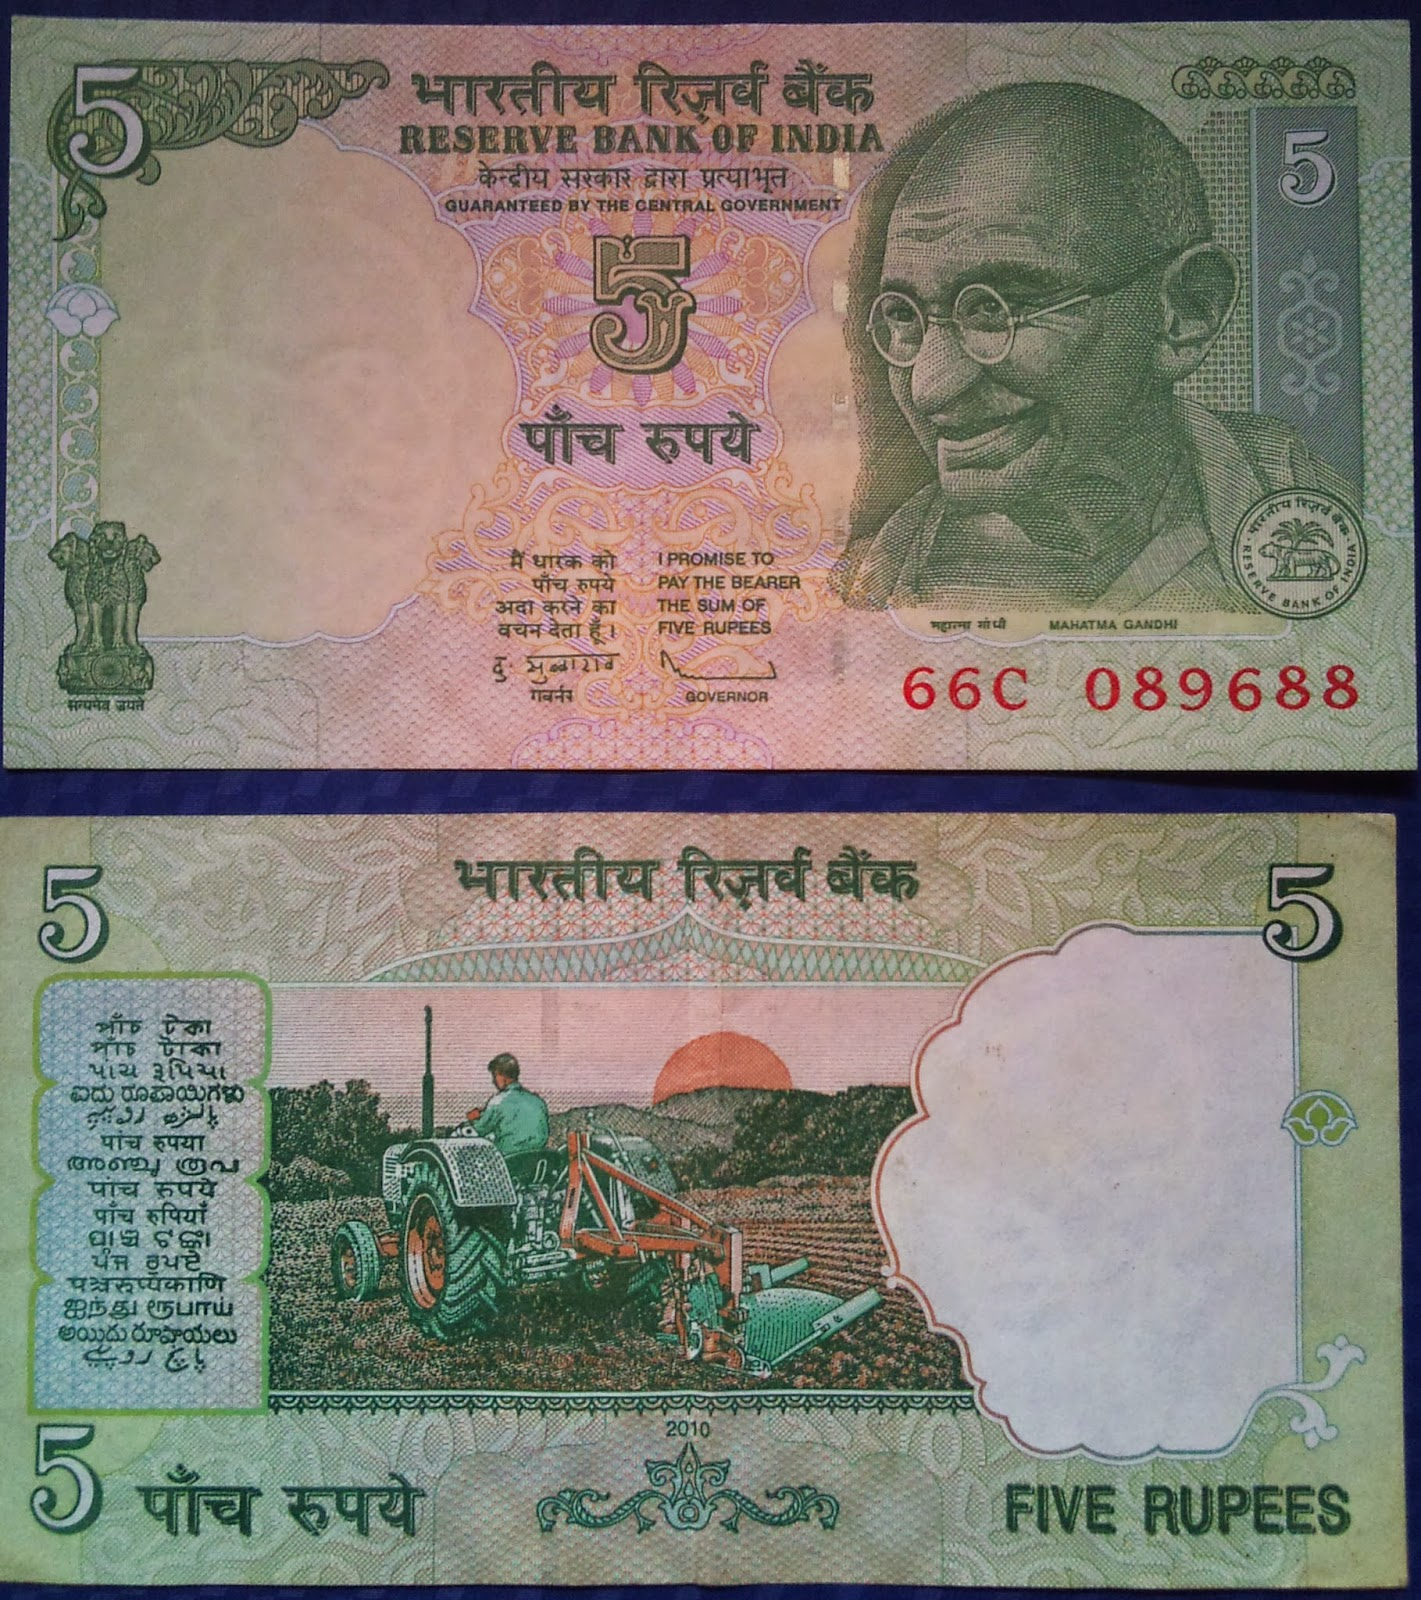 essay on indian currency It was in 1934 that high denomination currency was first introduced in india after only four years of rs500 and rs1000 in circulation, the rbi in an ambitious move introduced rs10,000 notes.